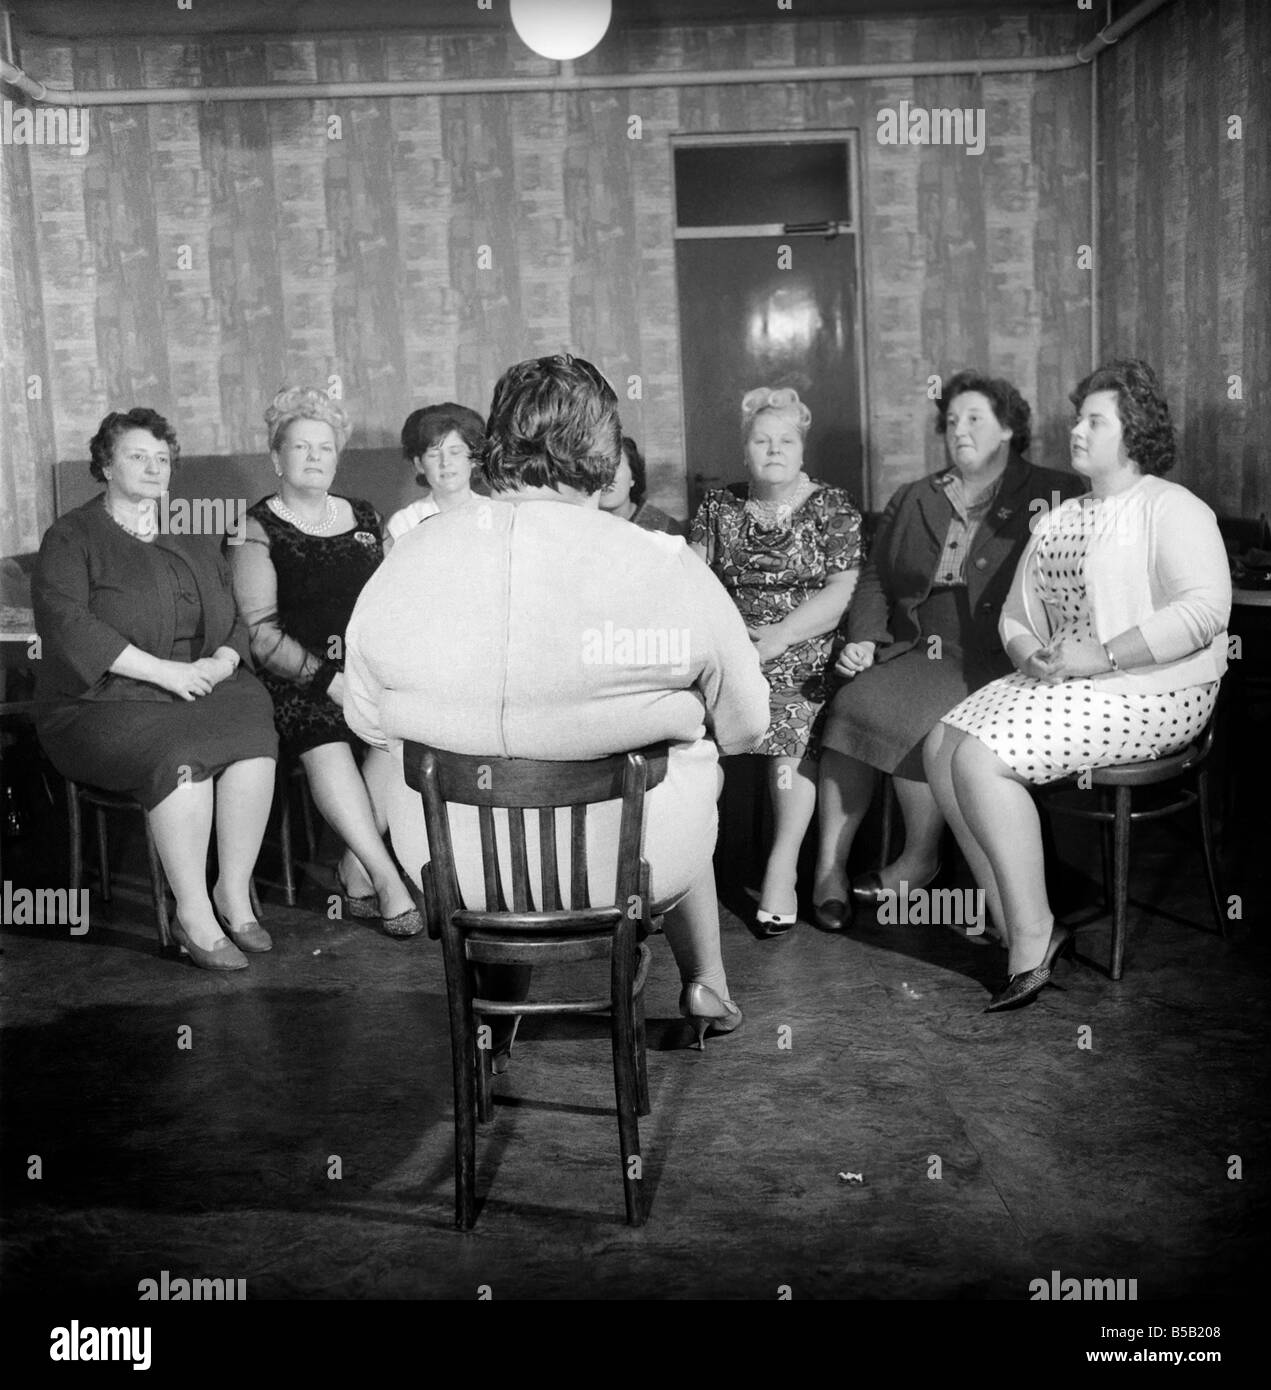 Members of the Southampton Fat Ladies Club gather for their